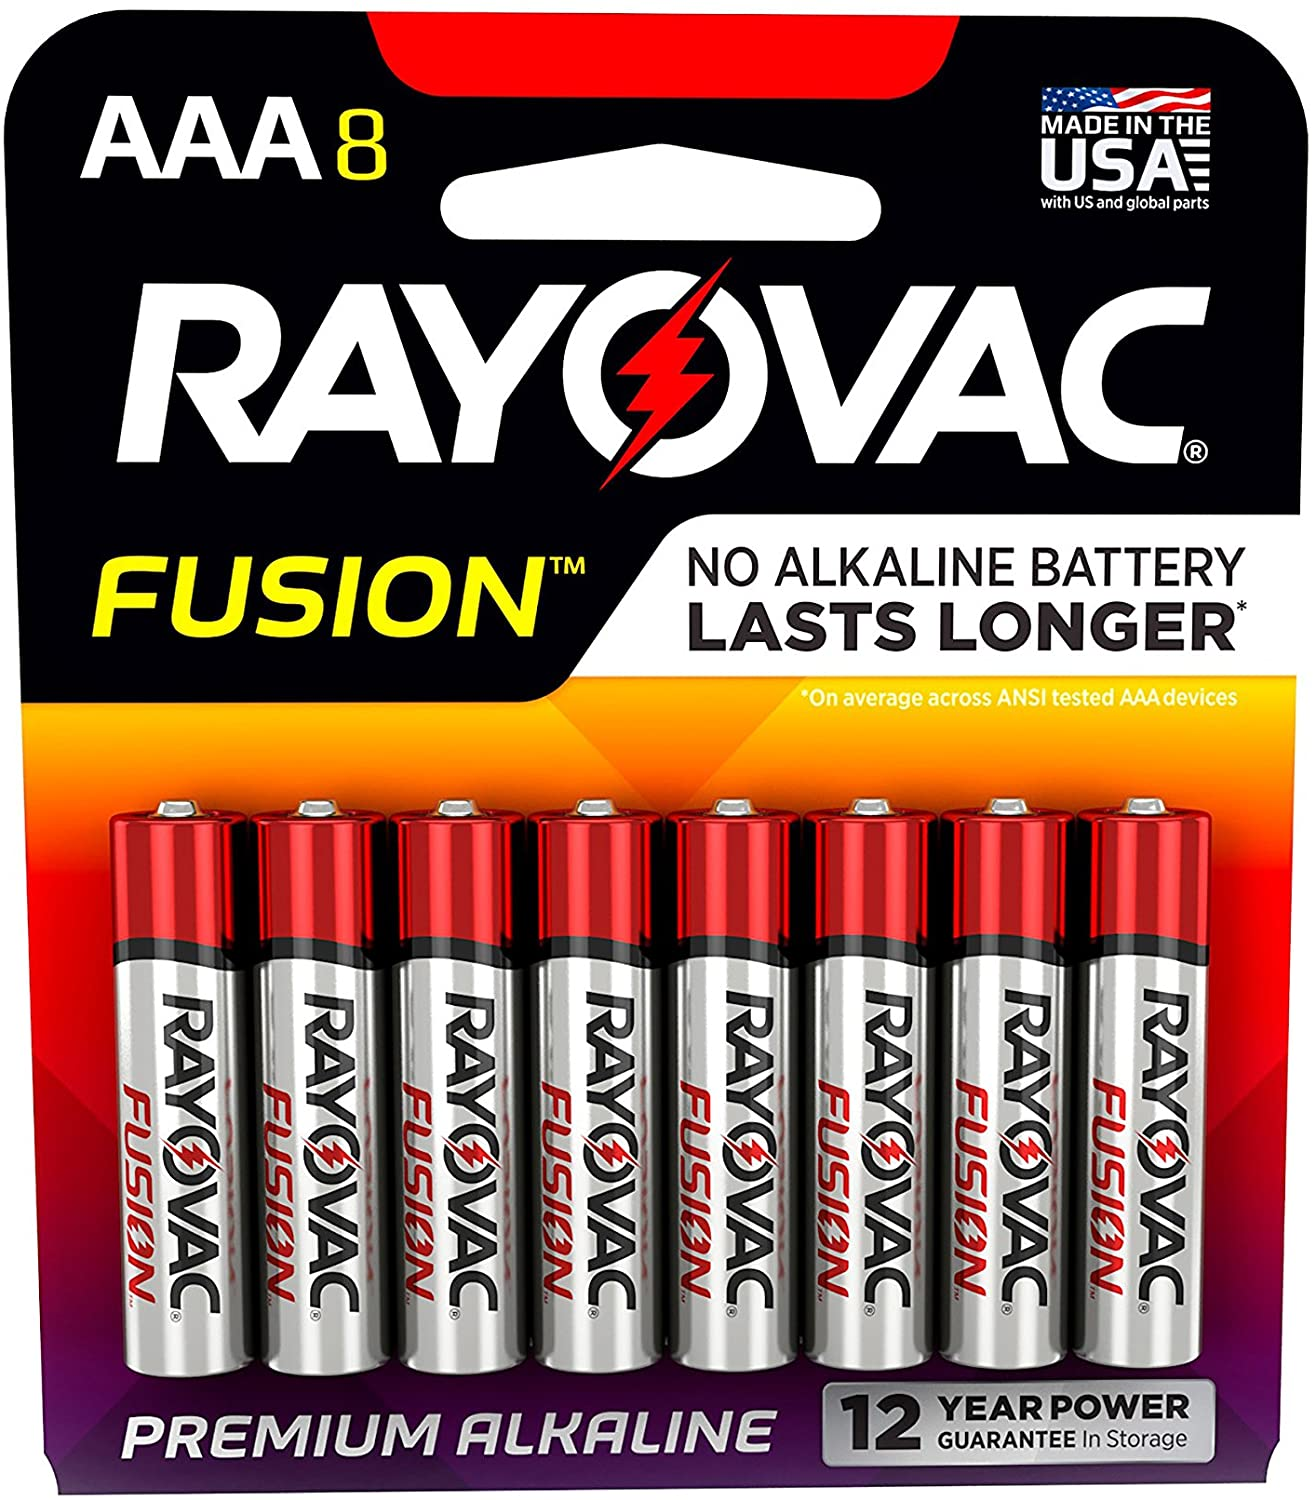 Rayovac Fusion AAA Batteries, Premium Alkaline Triple A Batteries, 8 Count